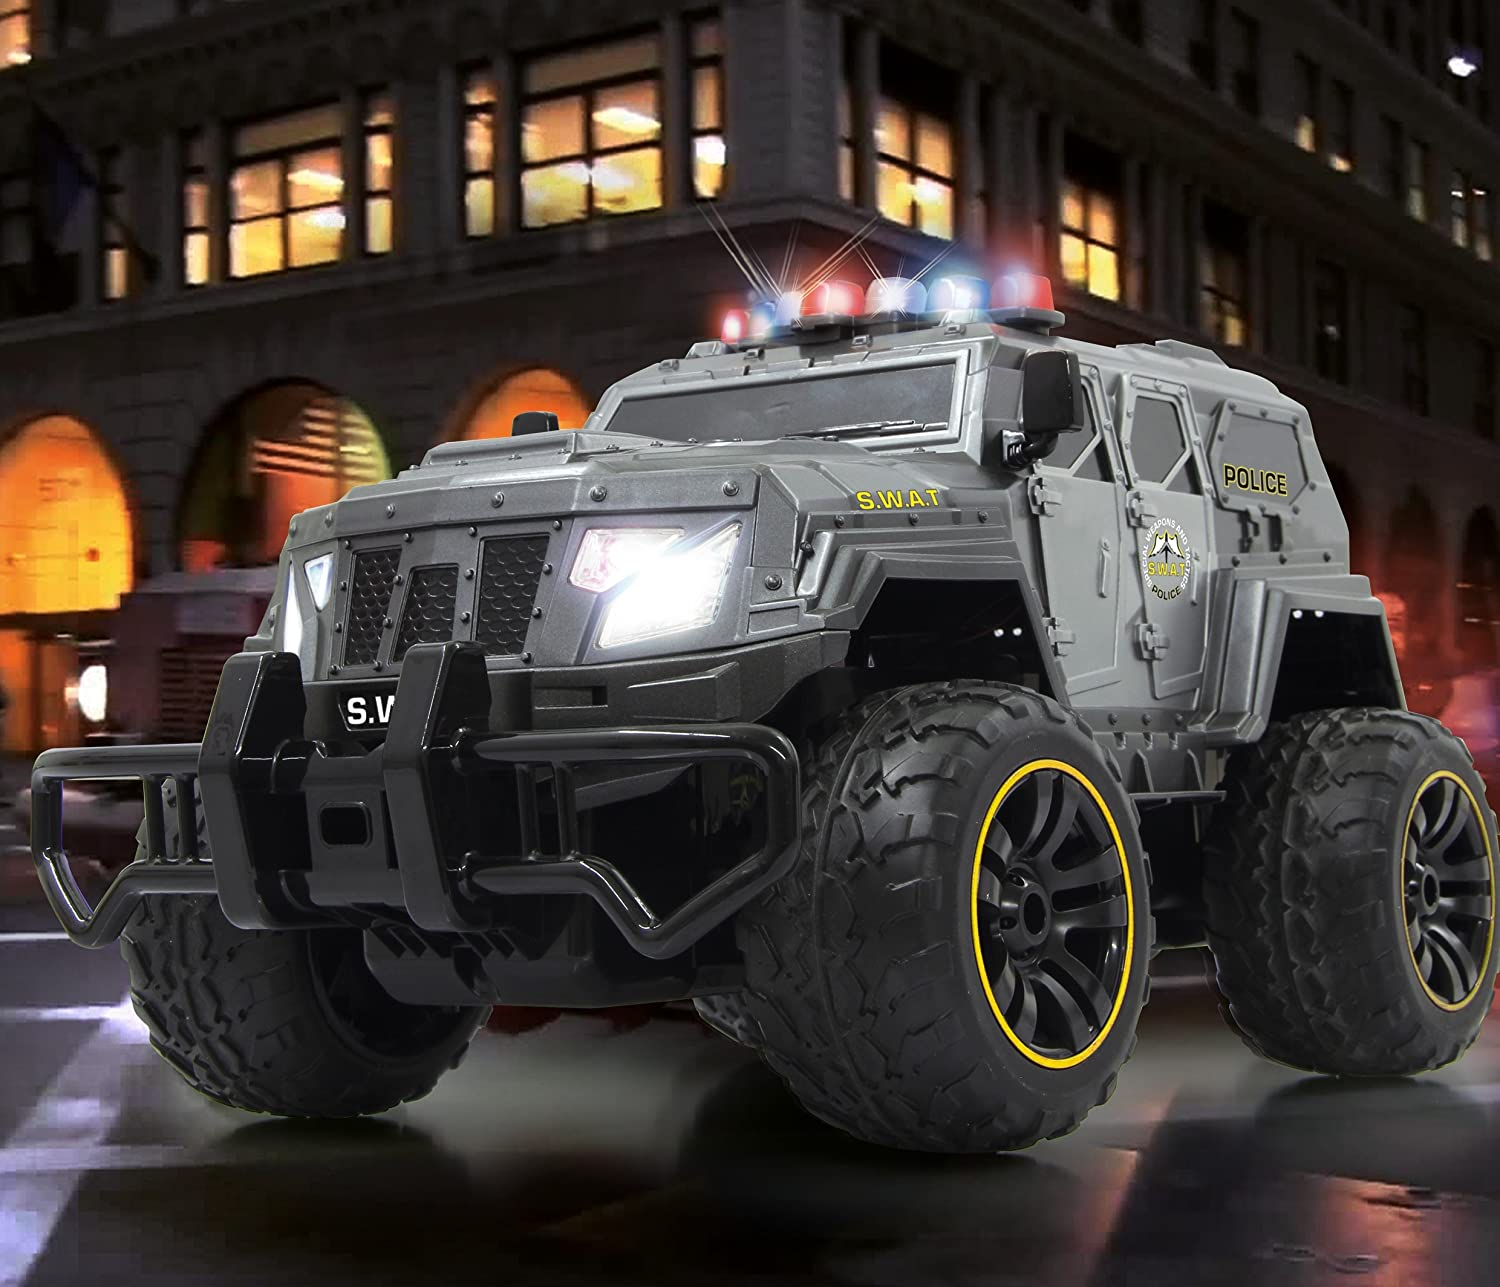 BUSDUGA – 2486 RC Monstertruck Polizei SWAT, 1:12 , RTR, inkl. 13 LED Lichter , Signallichter mit 4 Intervallen online bestellen